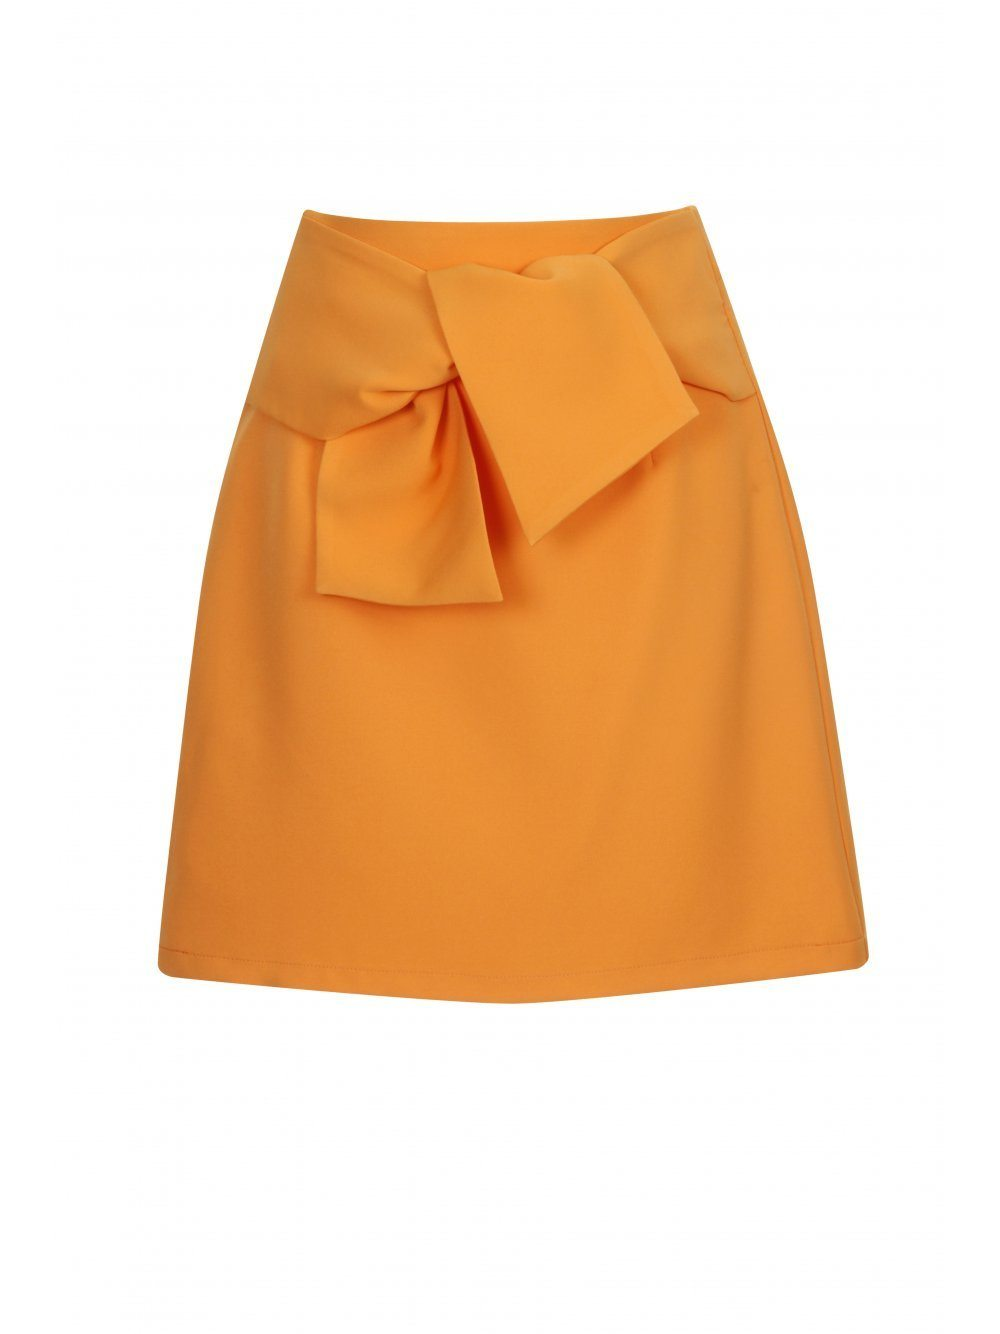 Tangerine Orange Tie Detail Mini Skirt